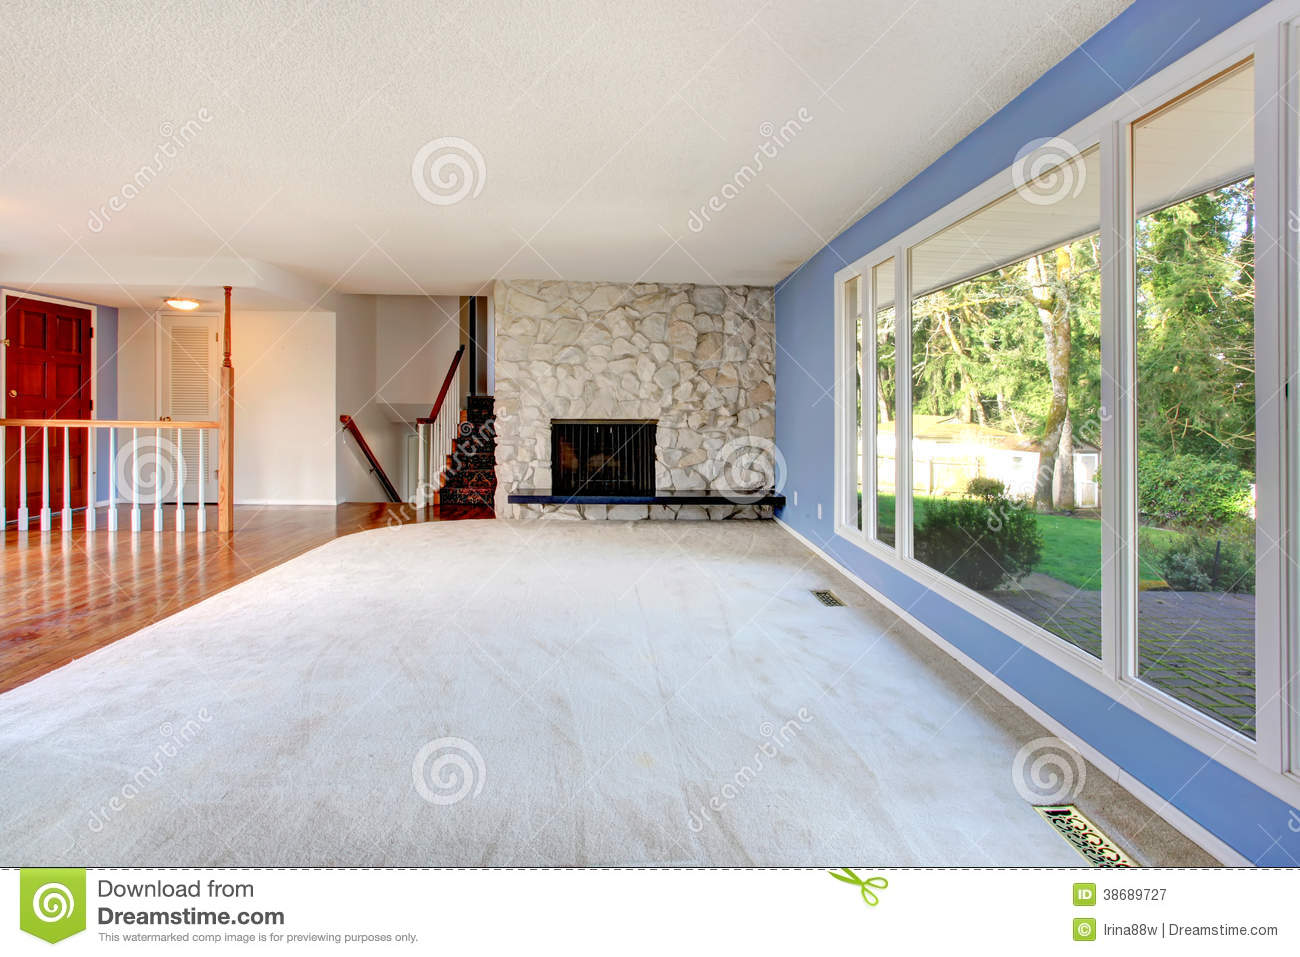 Big empty living room - Empty Beautiful Living Room With A Fireplace Royalty Free Stock Photography